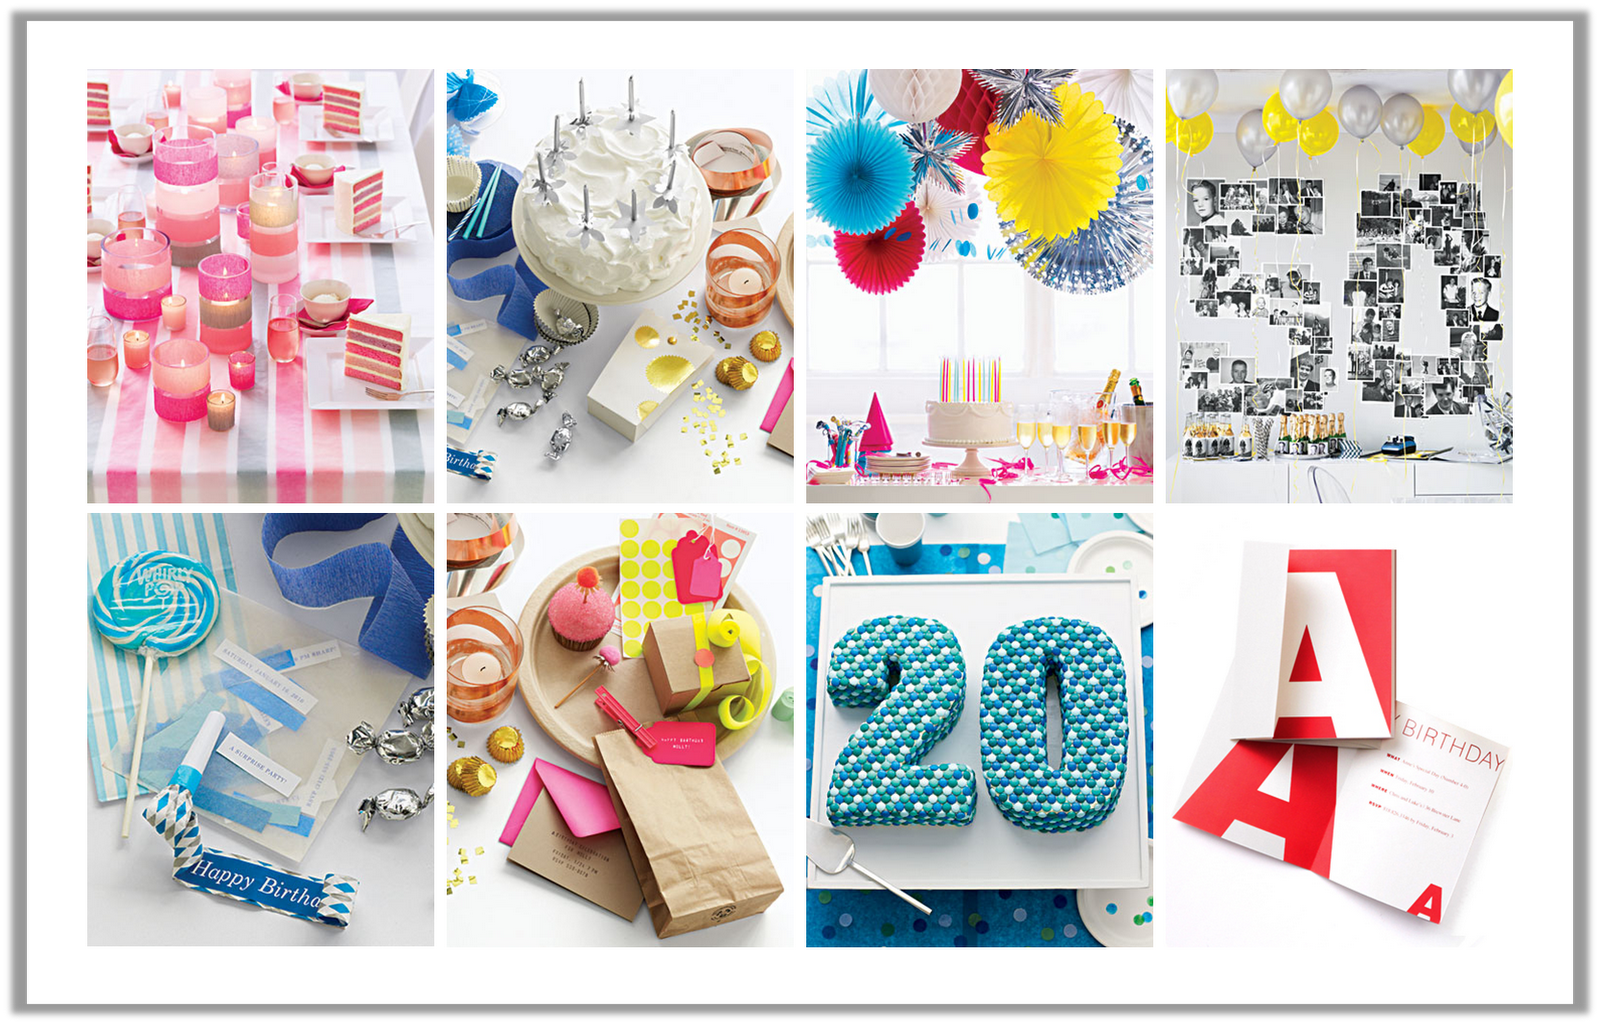 ... party favors . Check out more party tips, ideas and inspiration from